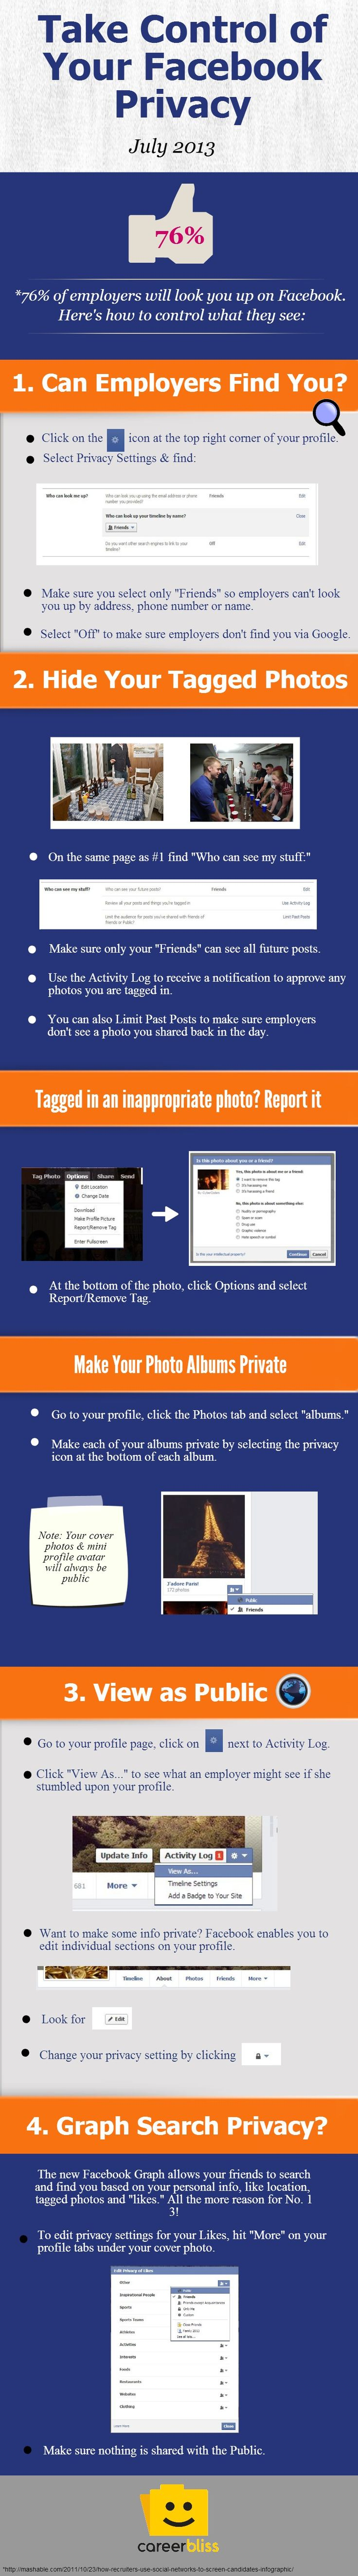 Take Control of Your #Facebook Privacy